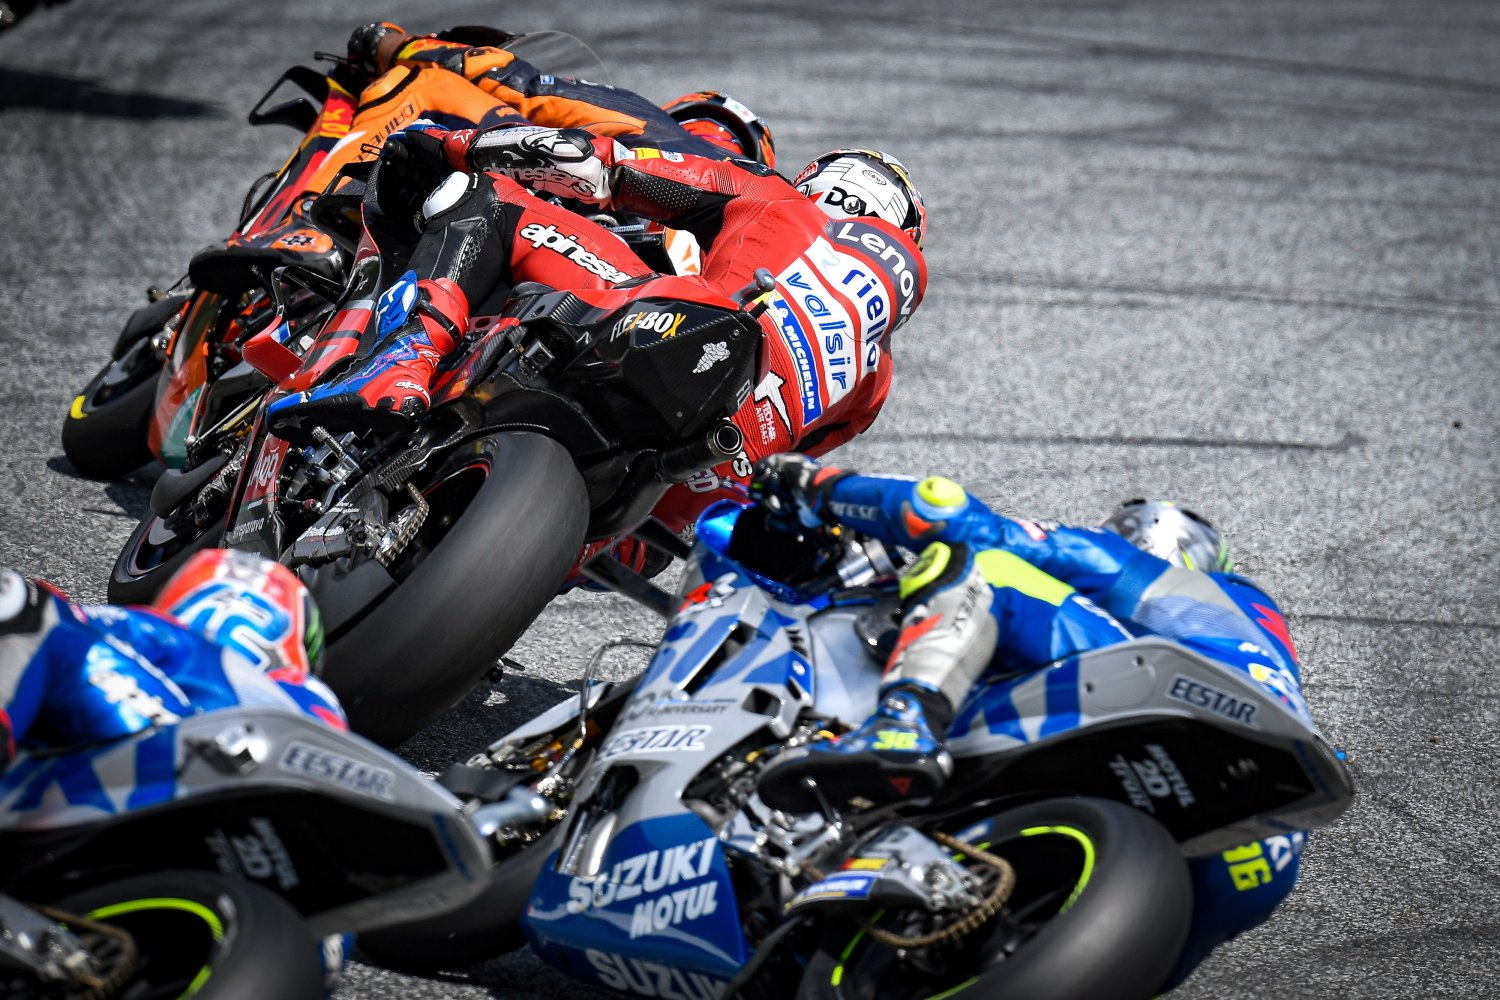 Diretta Sky Sport MotoGP, Calendario Gp Stiria 2020 - Differita TV8